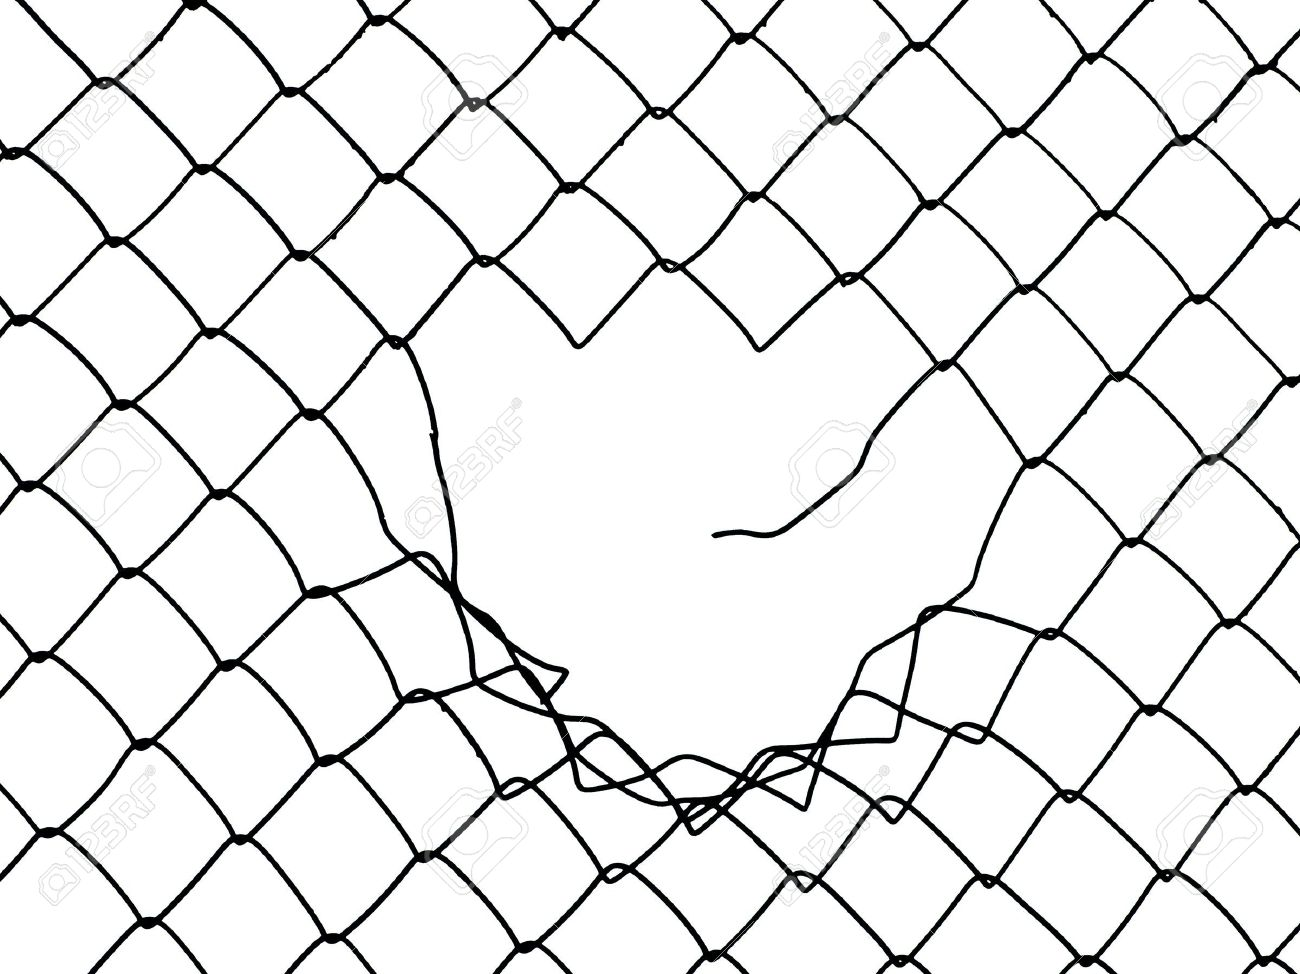 1300x974 Metal Wire Fence Protection Chainlink Background Stock Photo